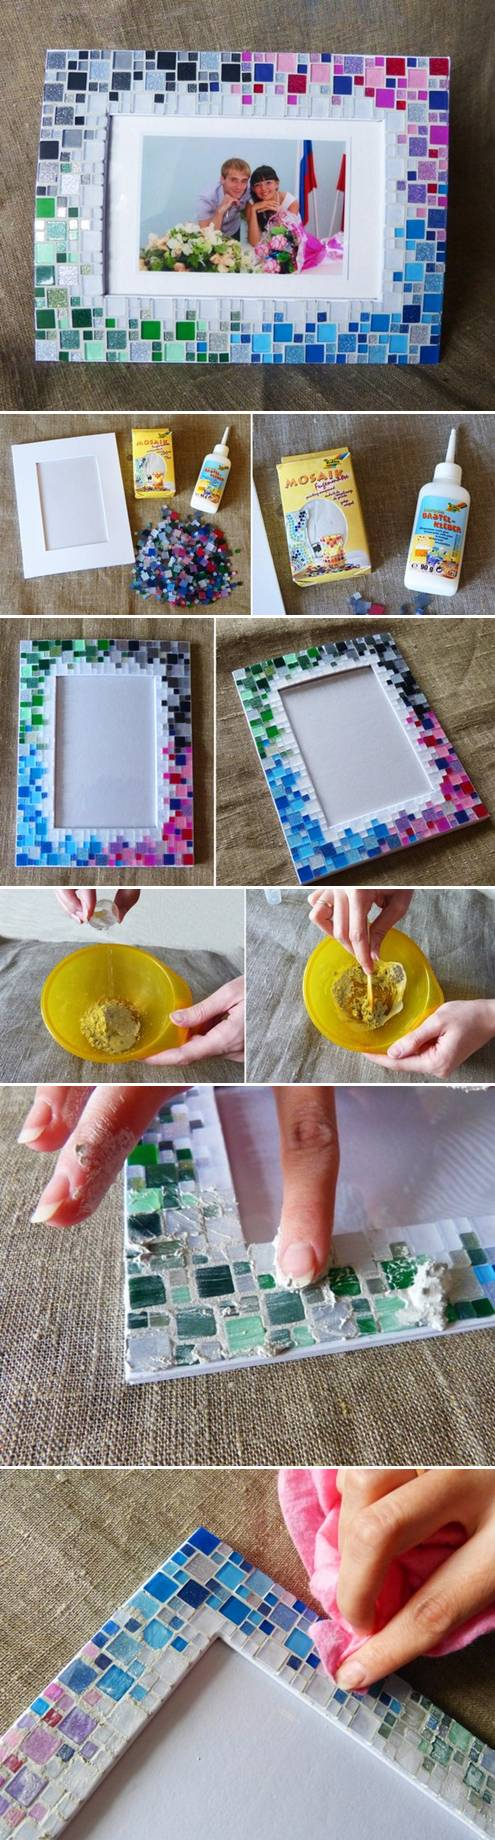 How to make Colorful Mosaic Picture collage photoframe step by step DIY tutorial instructions